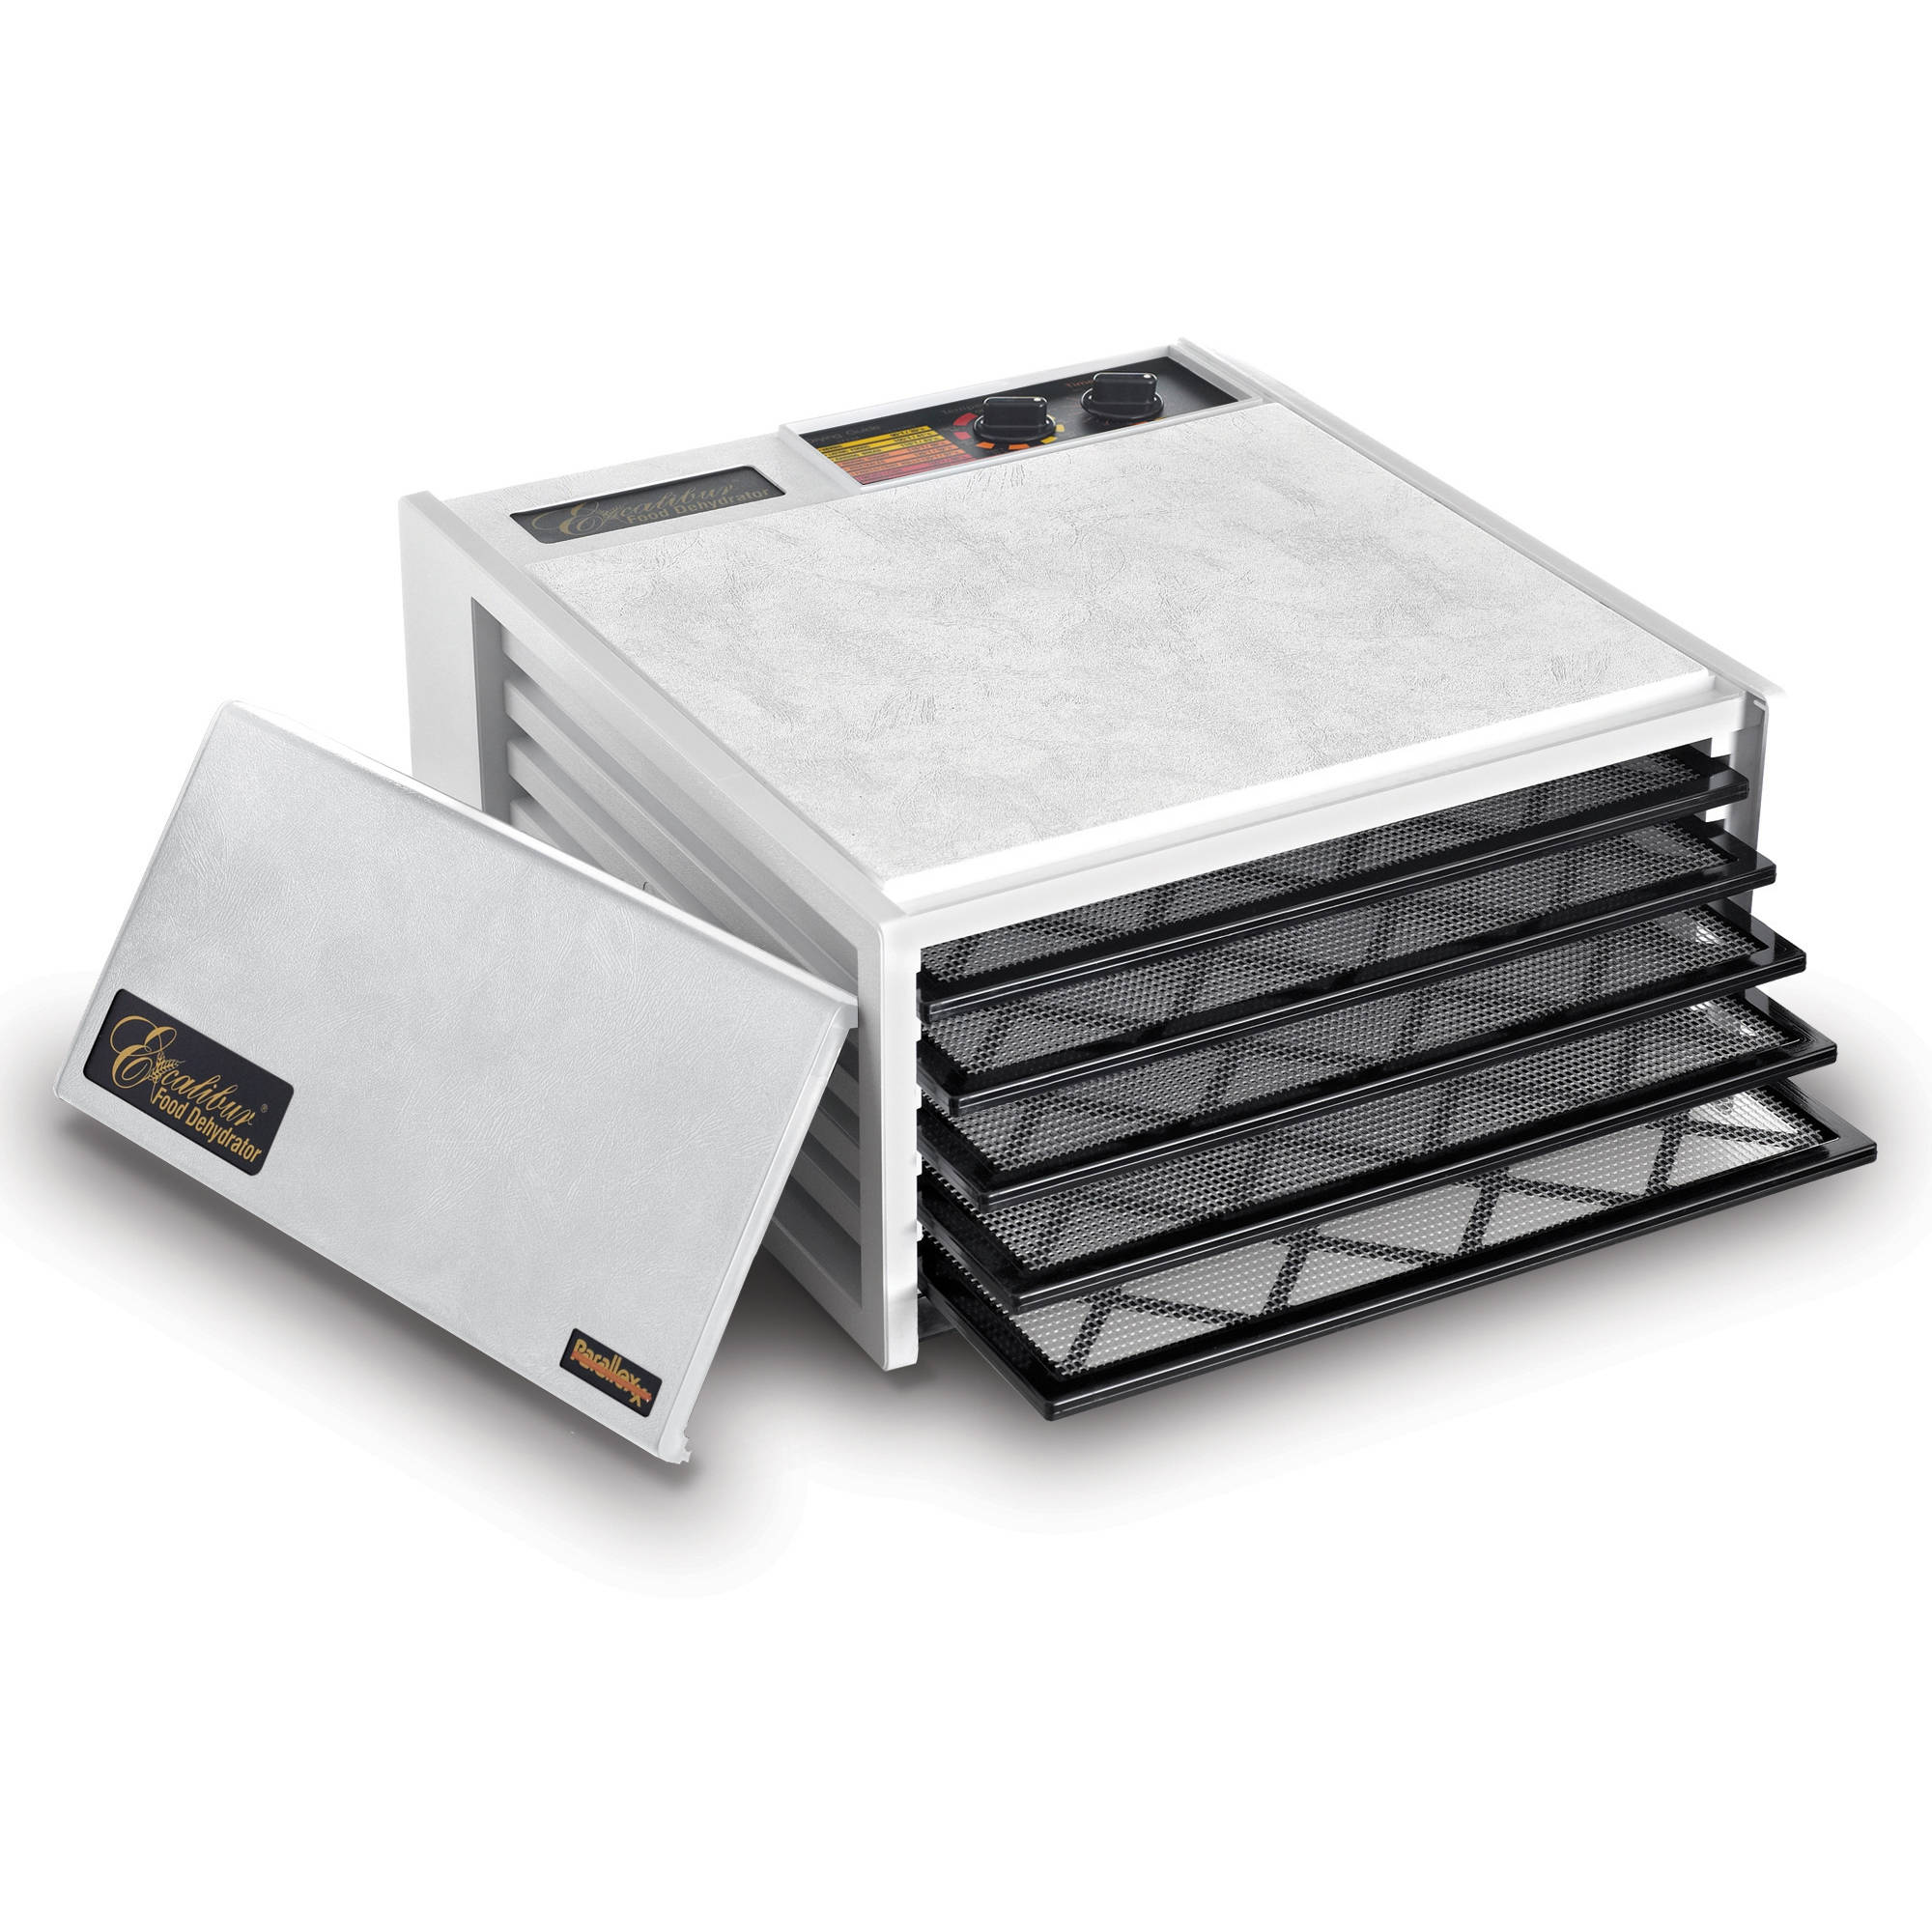 Excalbur 5-Tray Dehydrator with Timer, White by Excalibur